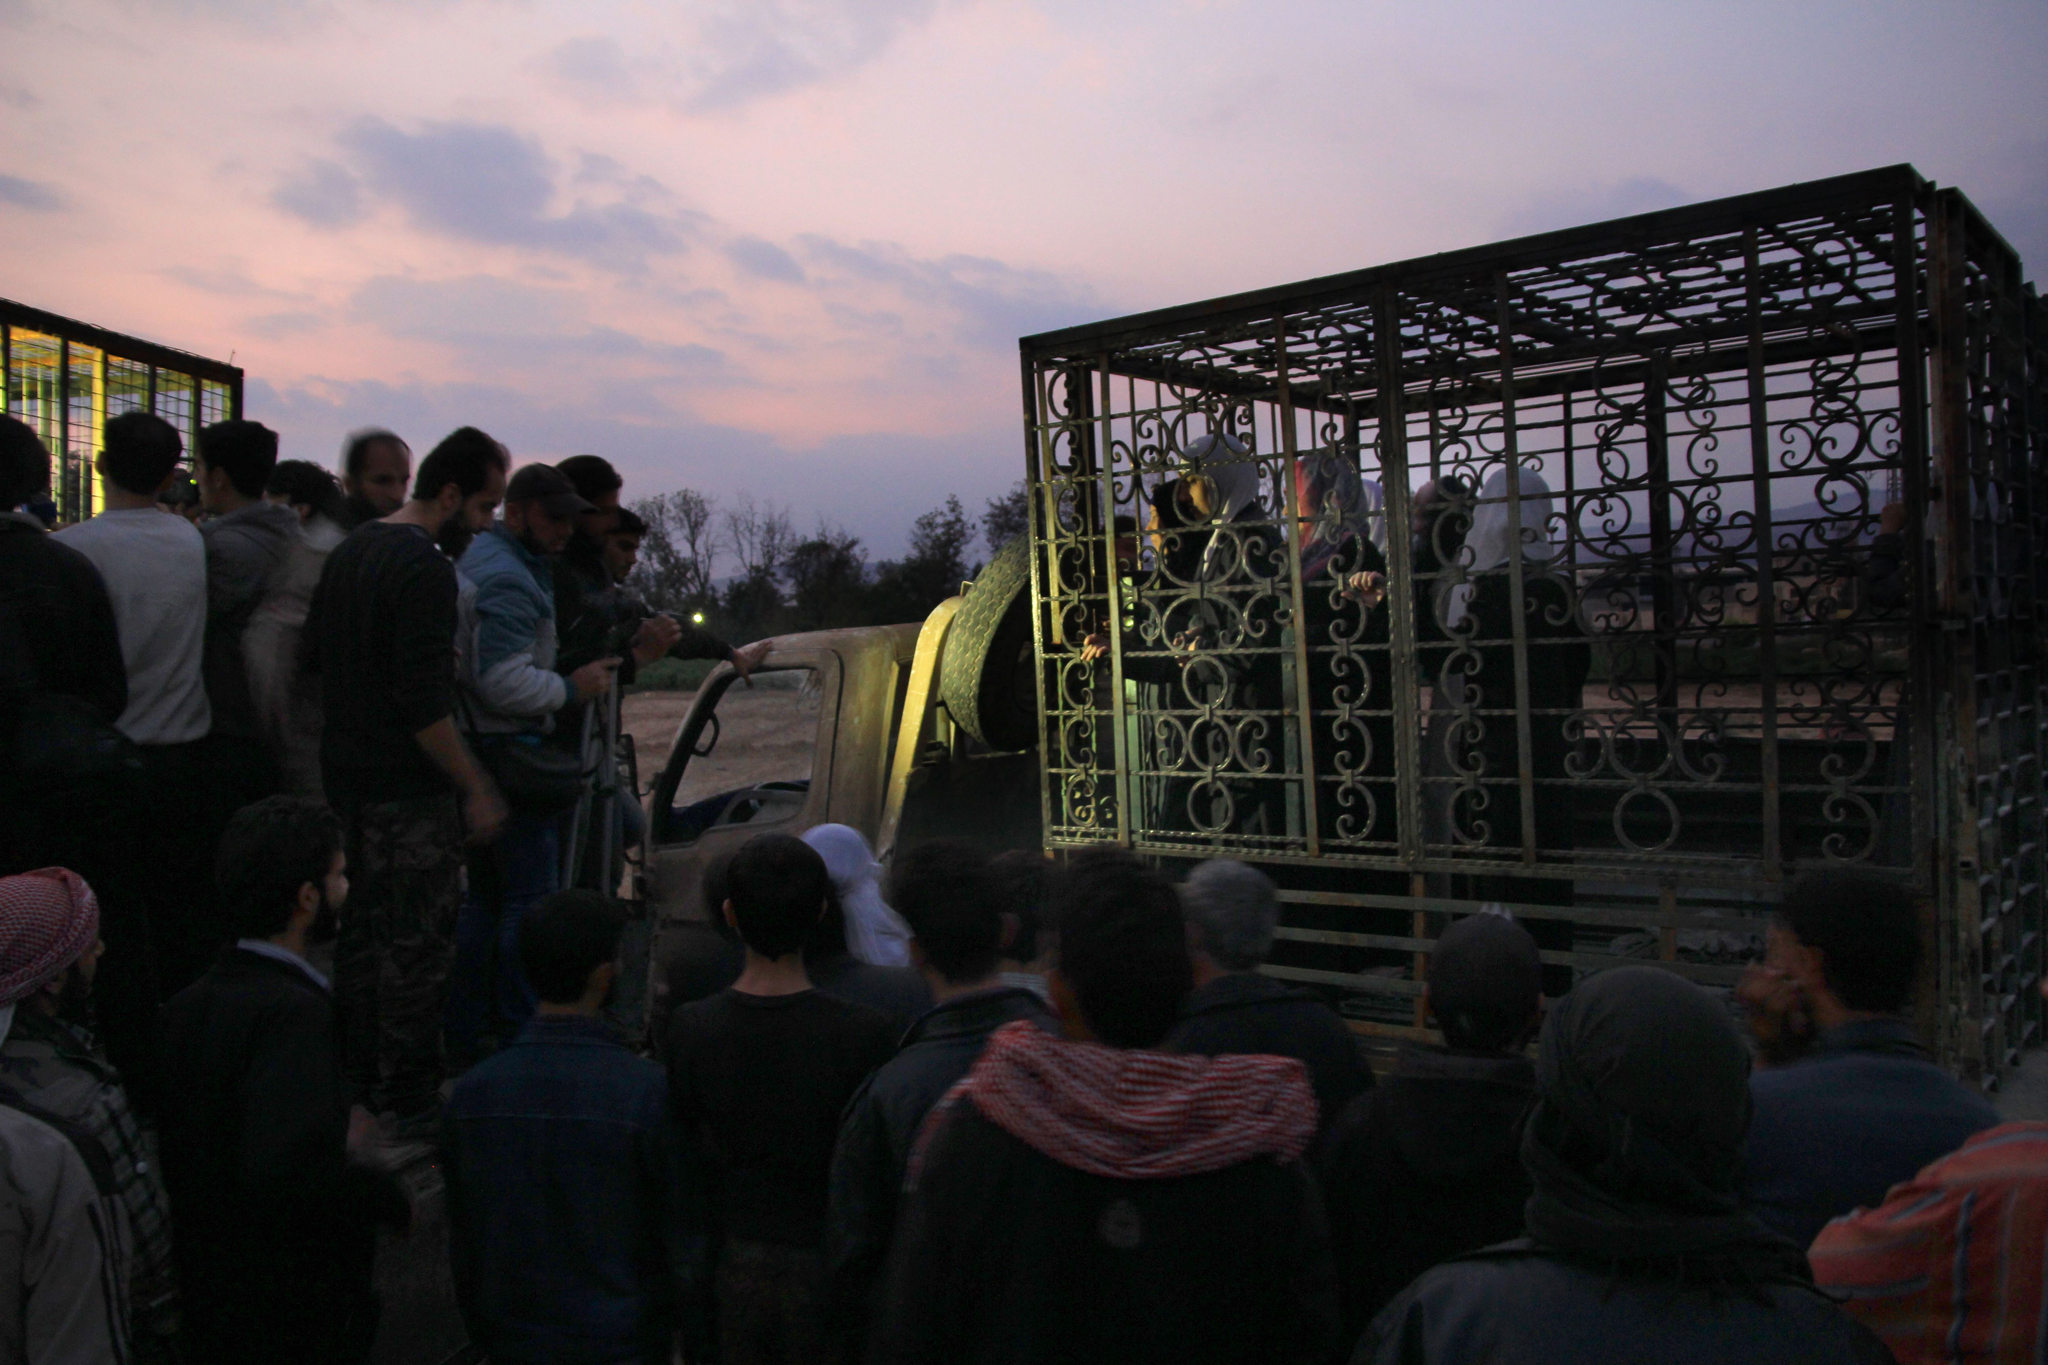 """TOPSHOTS Syrians are seen inside a cage ...TOPSHOTS Syrians are seen inside a cage in Douma, the largest opposition stronghold on the outskirts of Damascus, on October 31, 2015, as it has been reported that a major Syrian rebel group is using dozens of captives in metal cages as """"human shields"""". Jaish al-Islam, regarded as the most powerful rebel group near the capital, has put regime soldiers and Alawite civilians it was holding in metal cages, the Syrian Observatory for Human Rights told AFP. AFP PHOTO / AHMAD AL-FAROQAHMAD AL-FAROQ/AFP/Getty Images"""